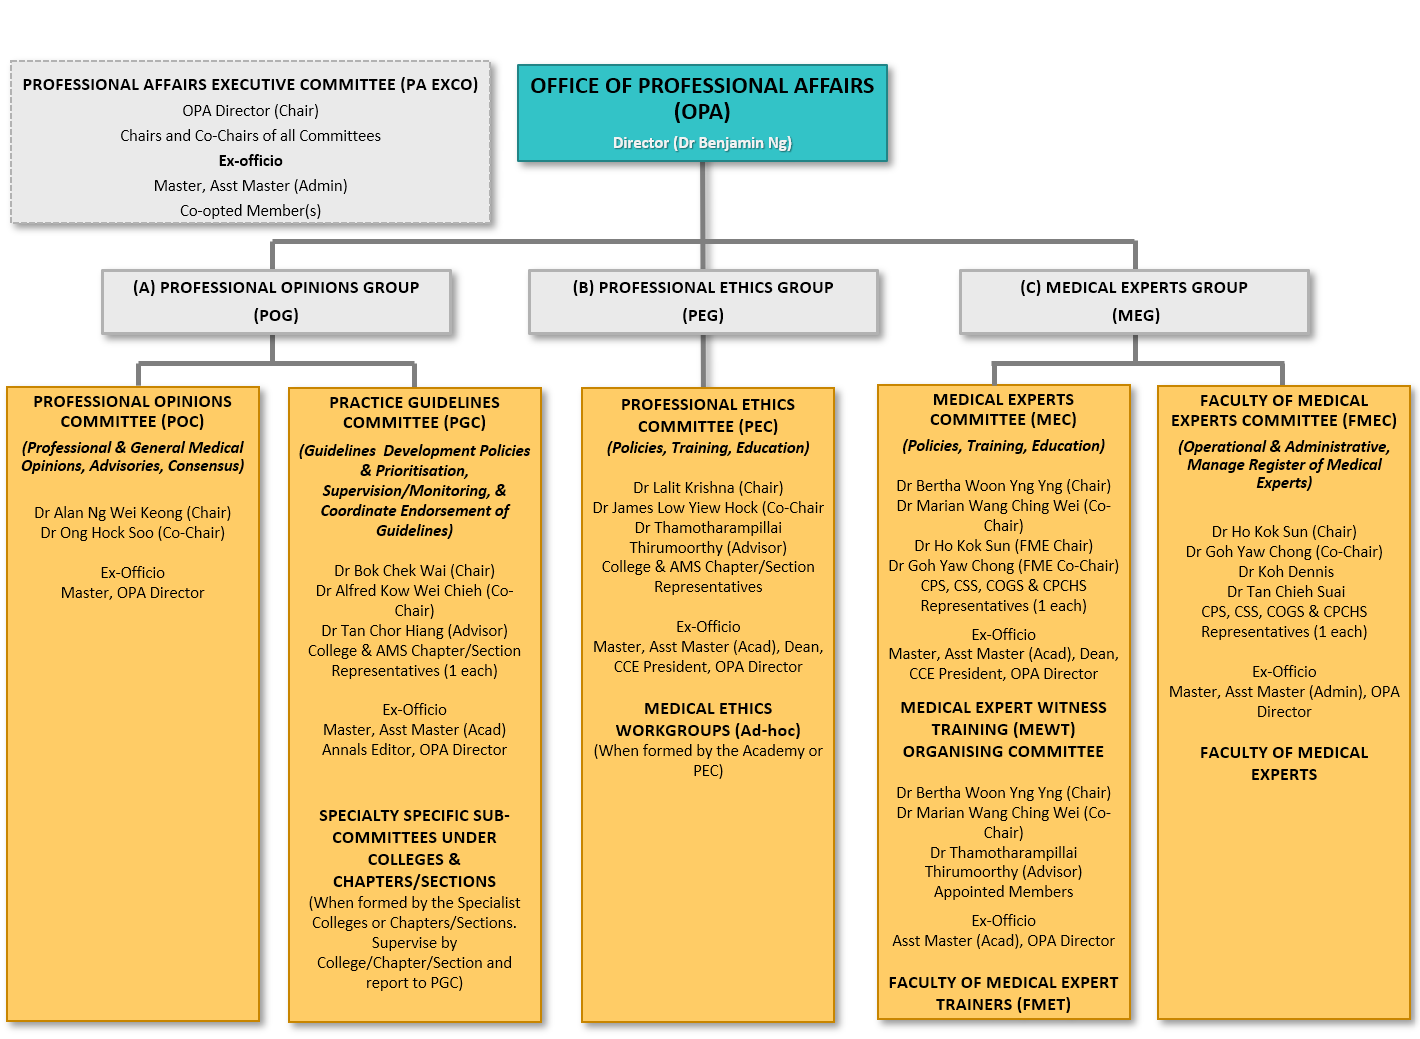 Organizational Chart of the Office of Professional Affairs (reorganized as of January FY2021)